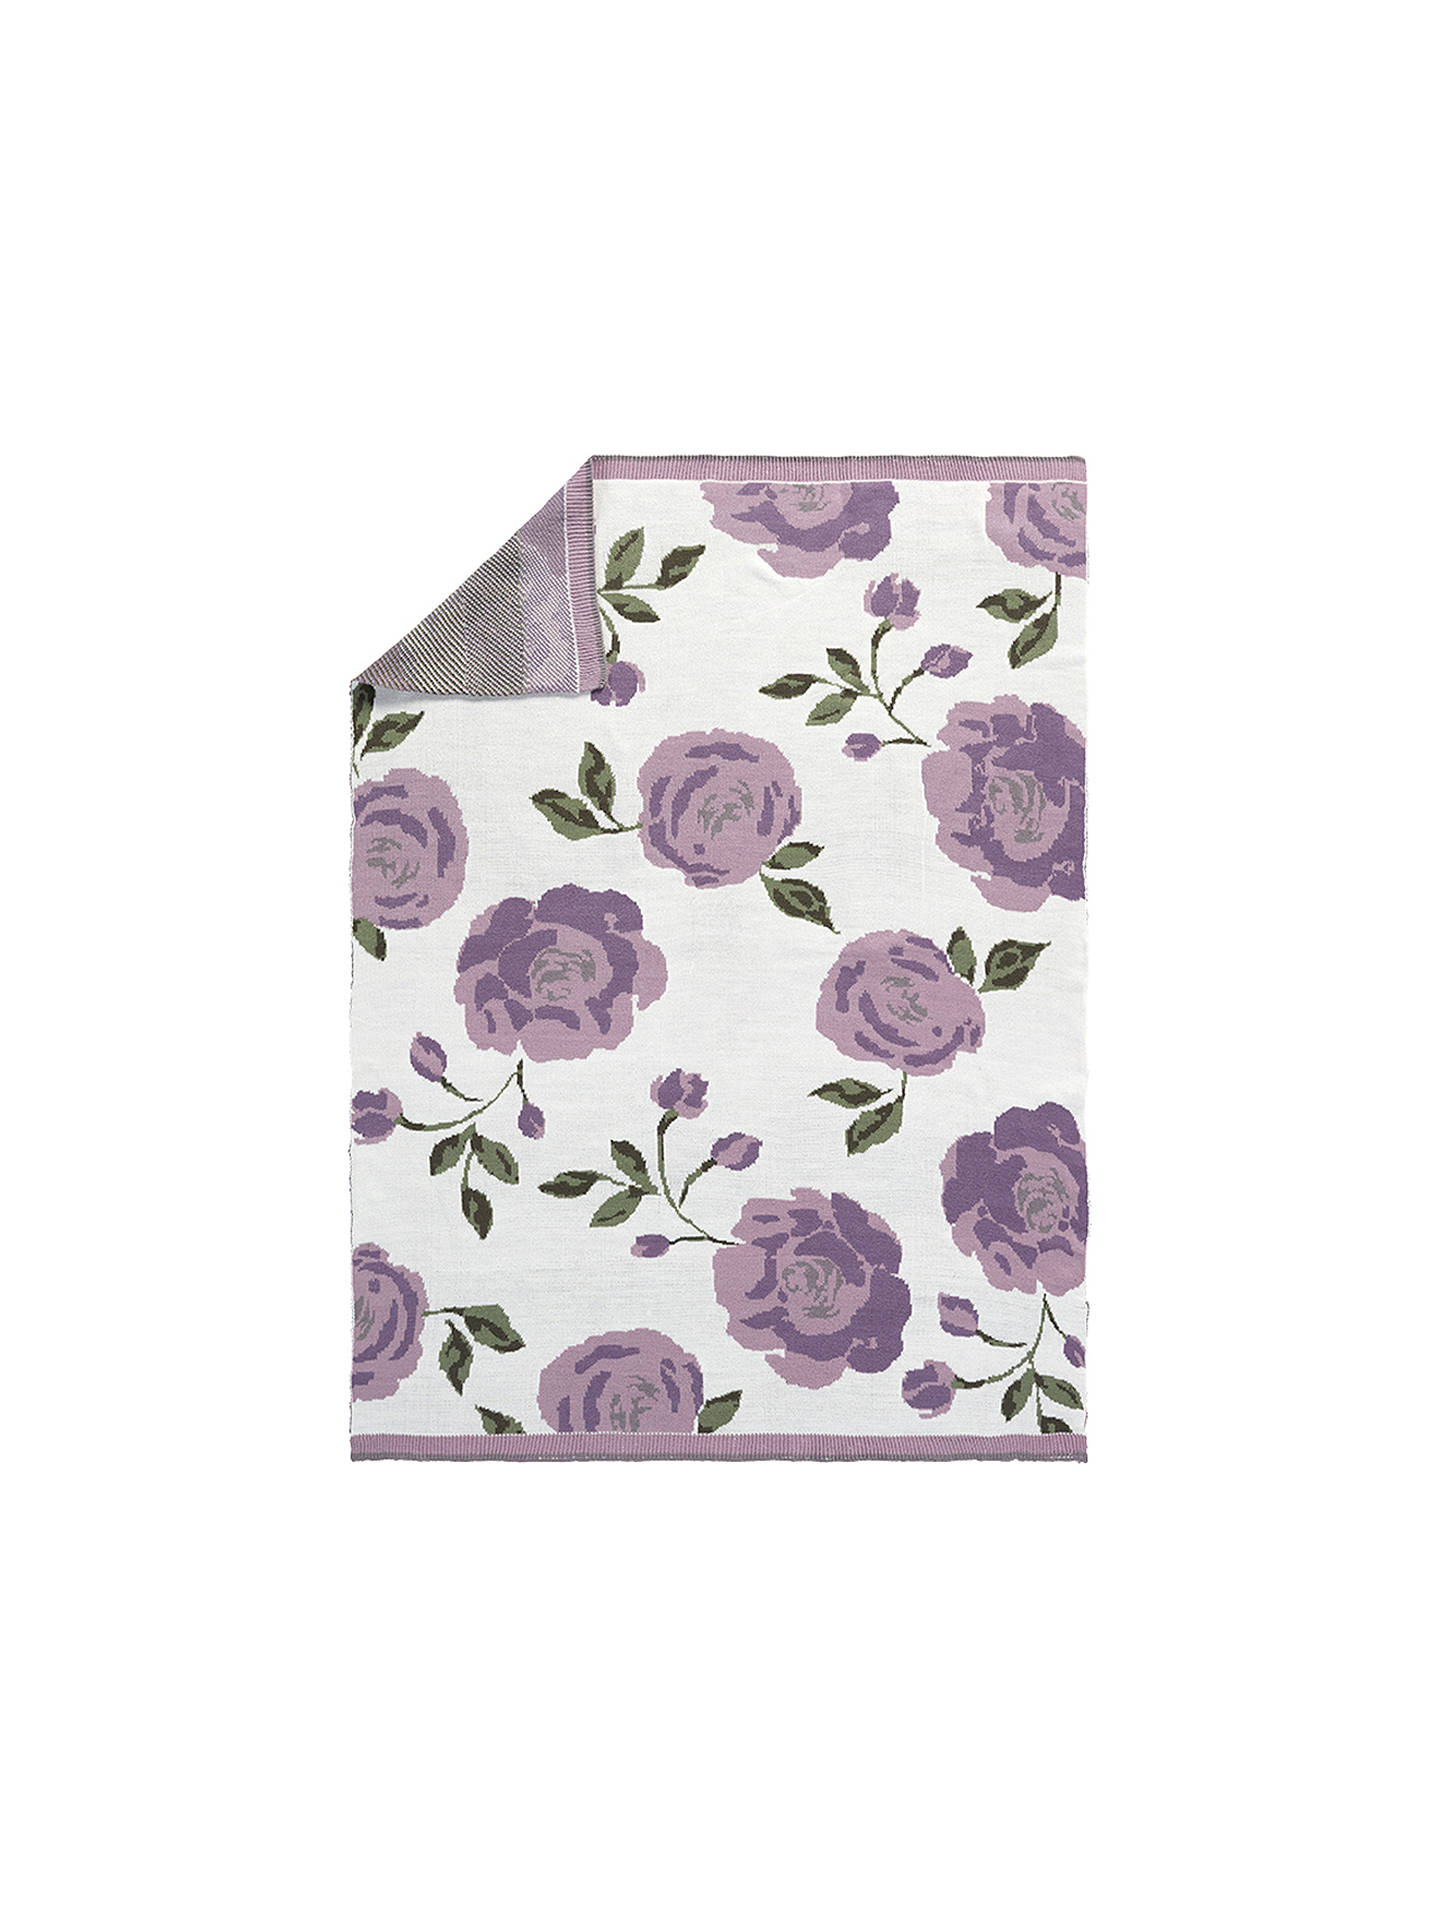 Buy Pottery Barn Kids Meredith Floral Knit Baby Blanket, Lavender Online at johnlewis.com